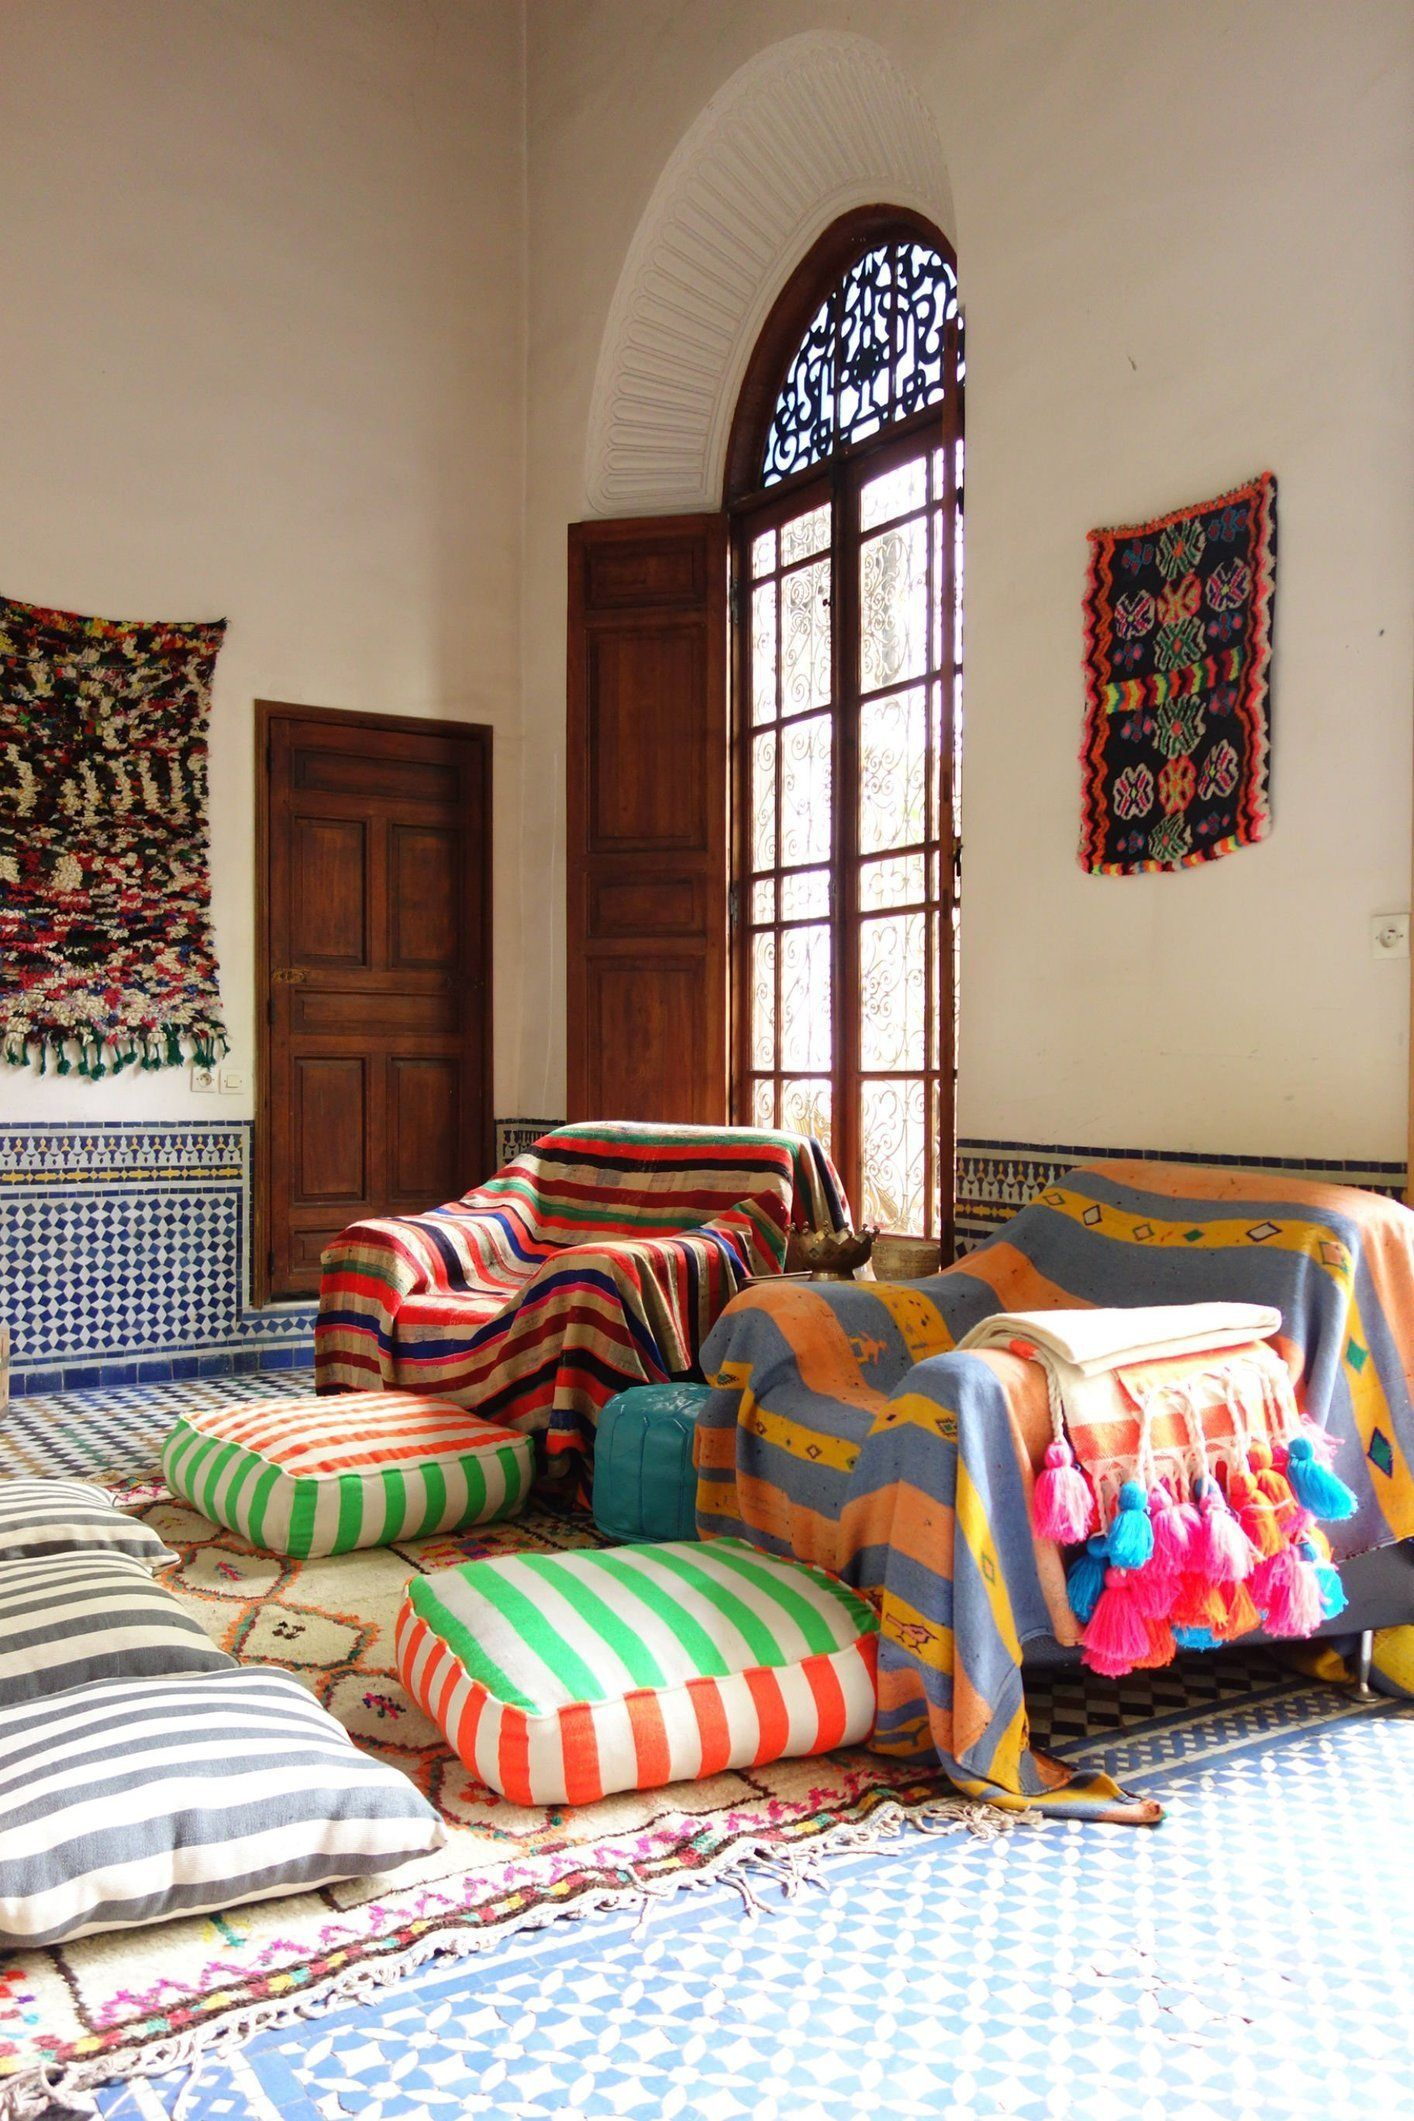 House Tour: A Textured, Patterned Paradise in Morocco | Pinterest ...